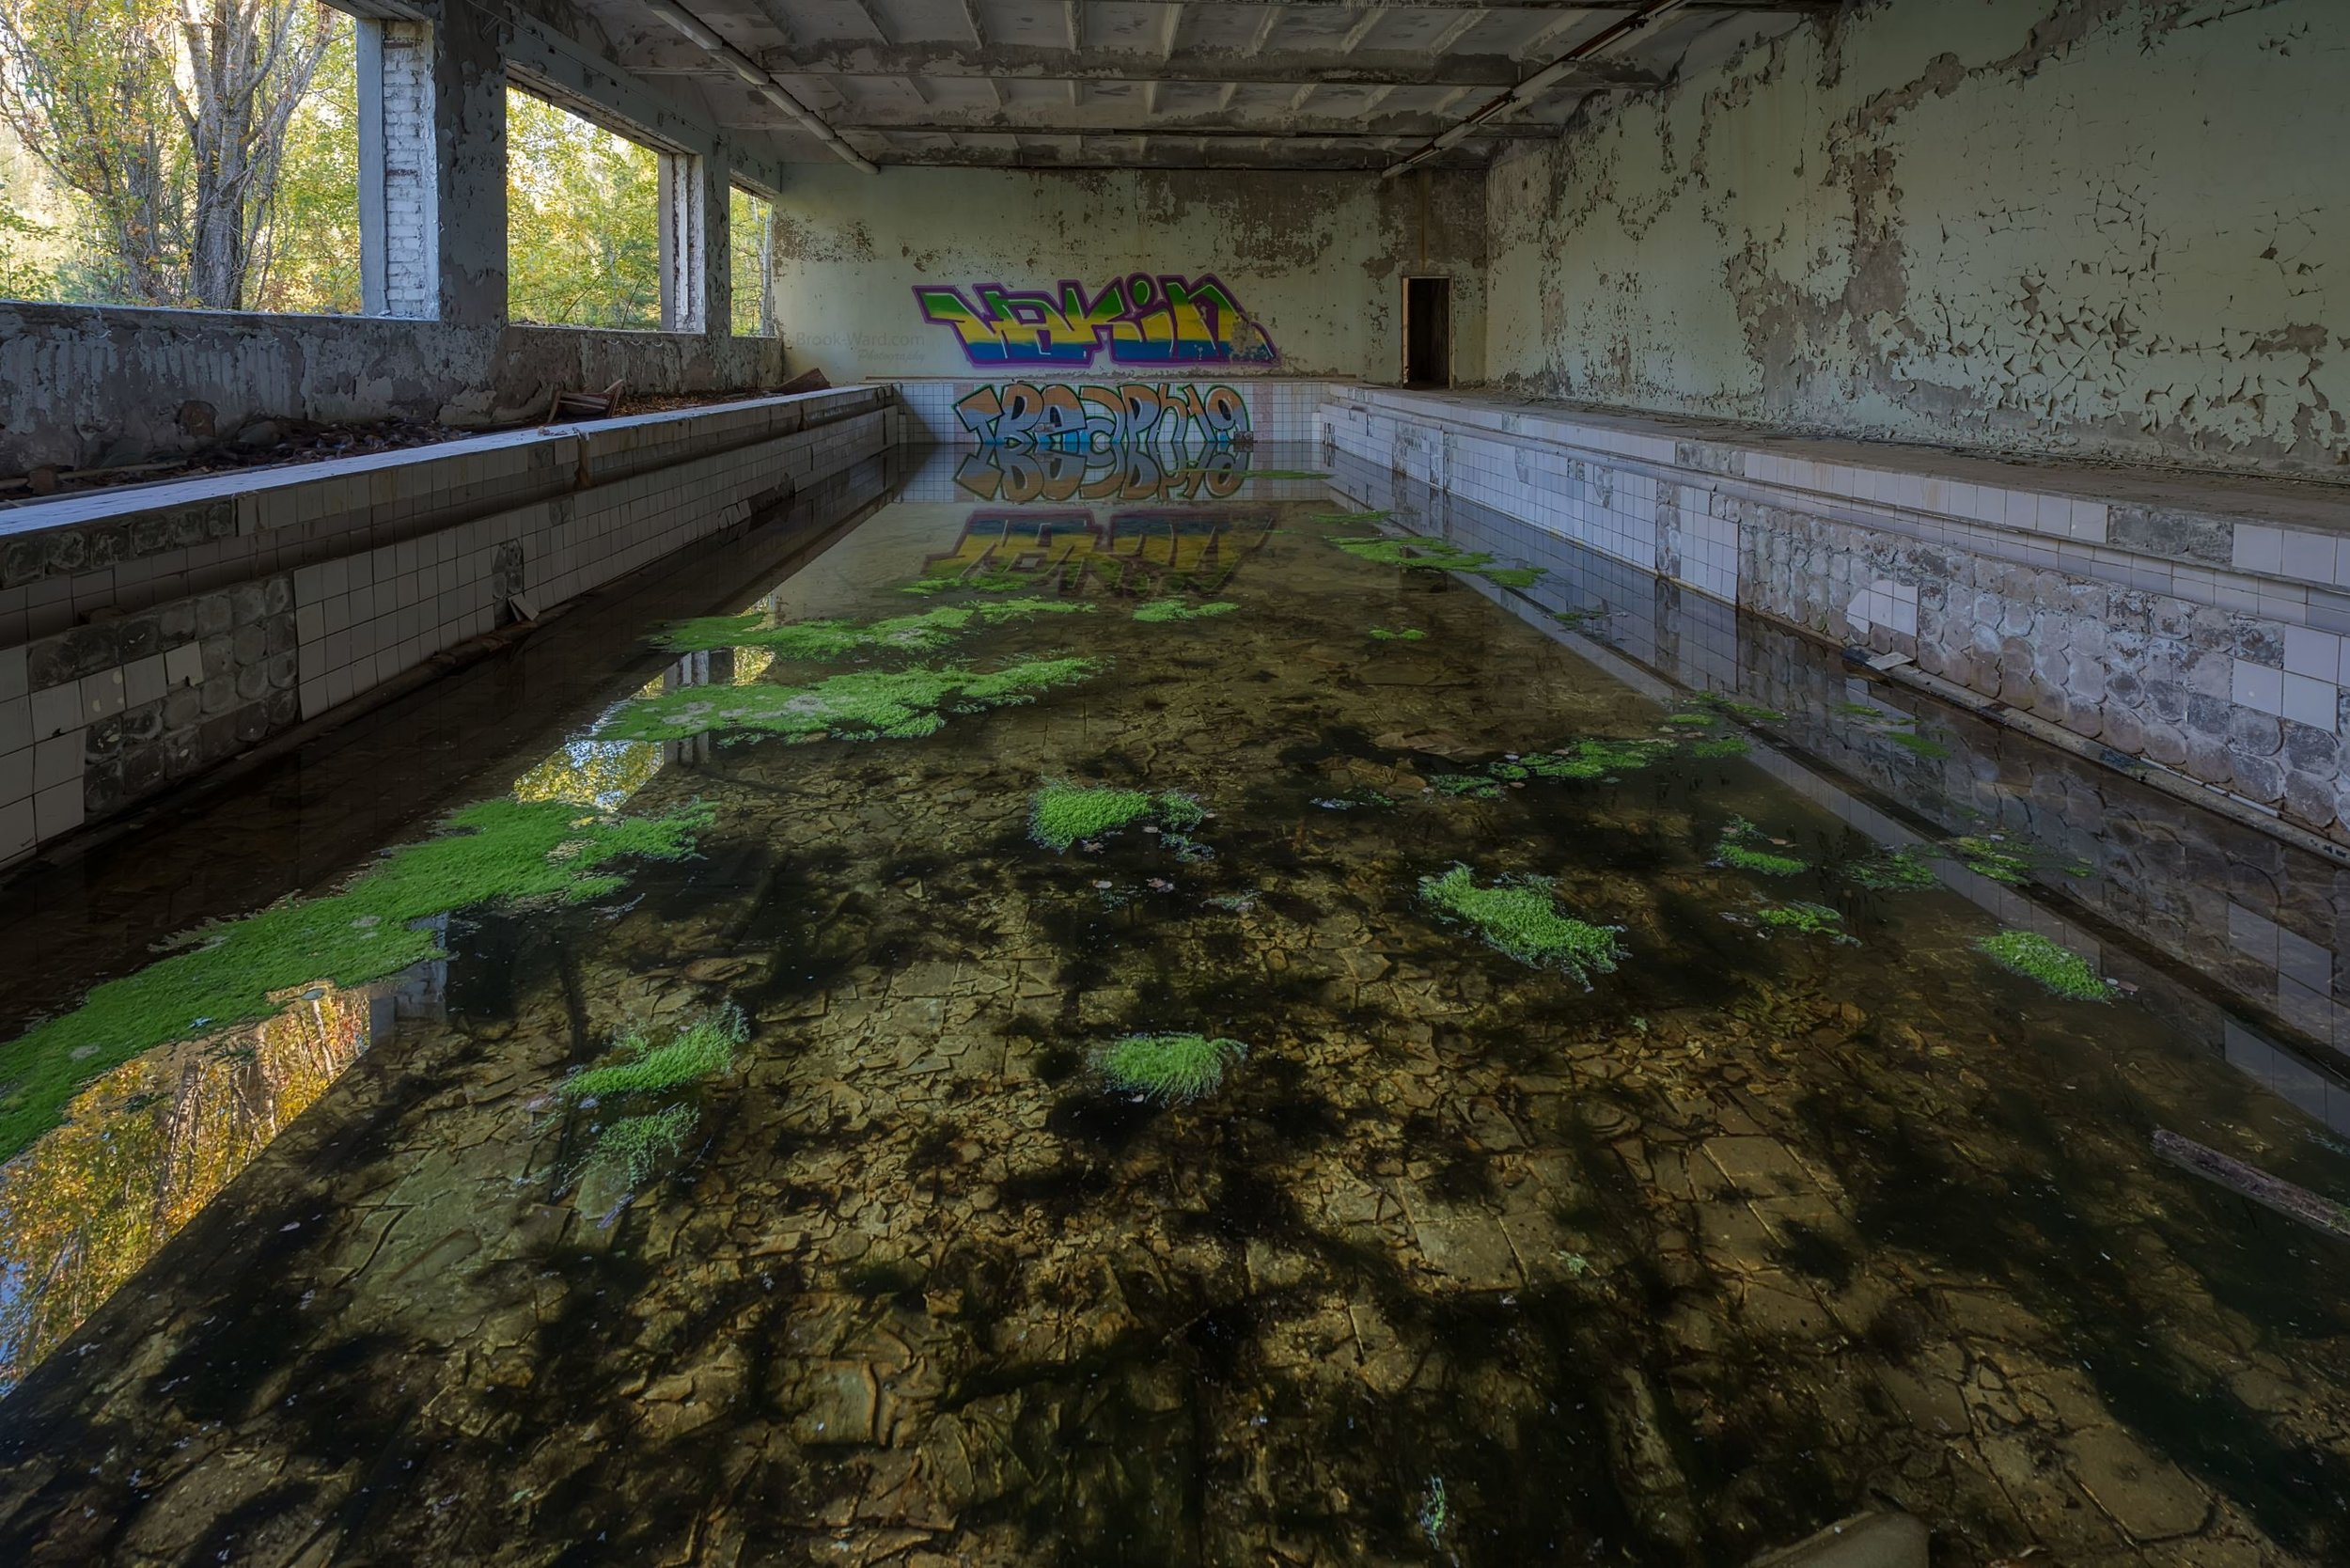 Chernobyl Cultural Center Pool